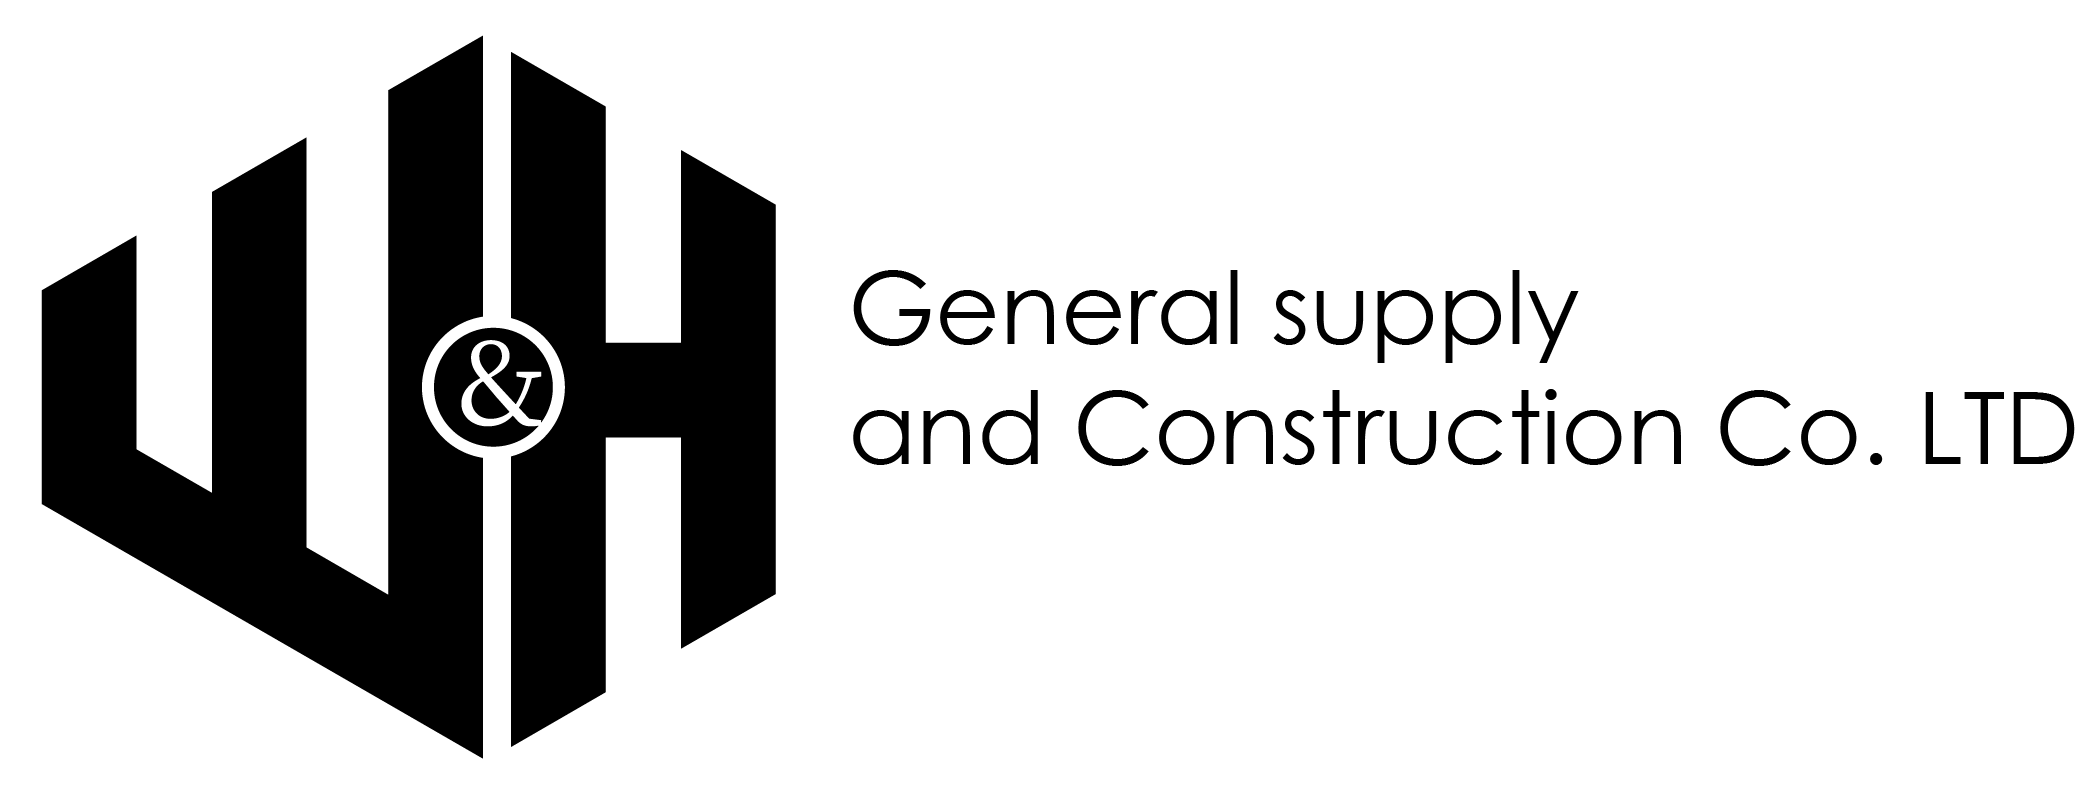 W&H GENERAL SUPPLY & CONSTRUCTION CO. LTD